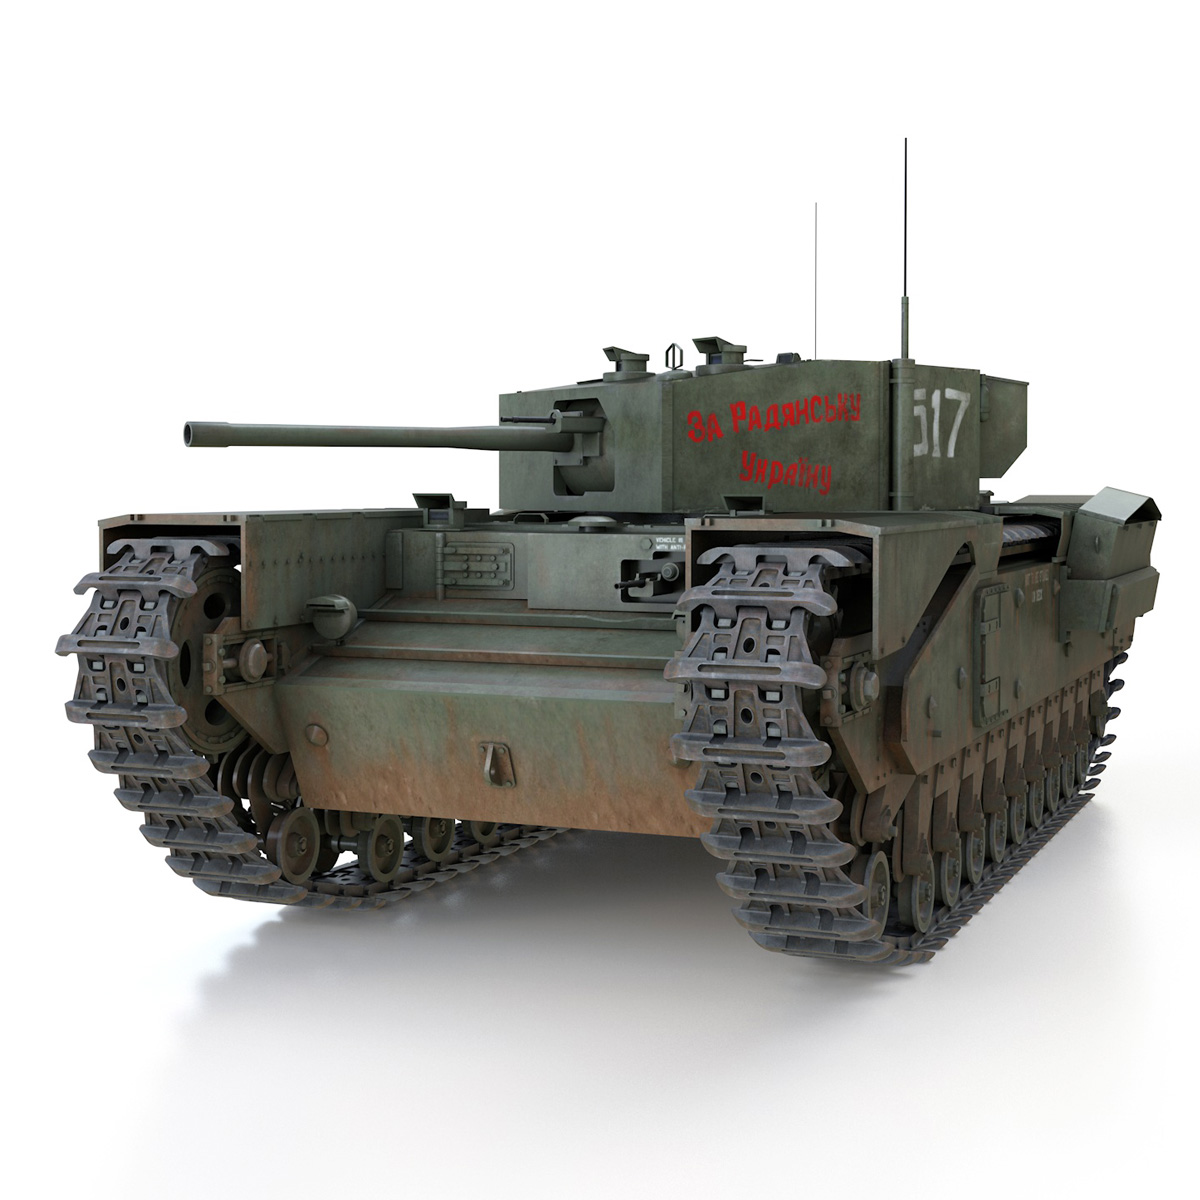 churchill mk iii - 517 - soviet army 3d загвар 3ds fbx c4d lwo obj 272975